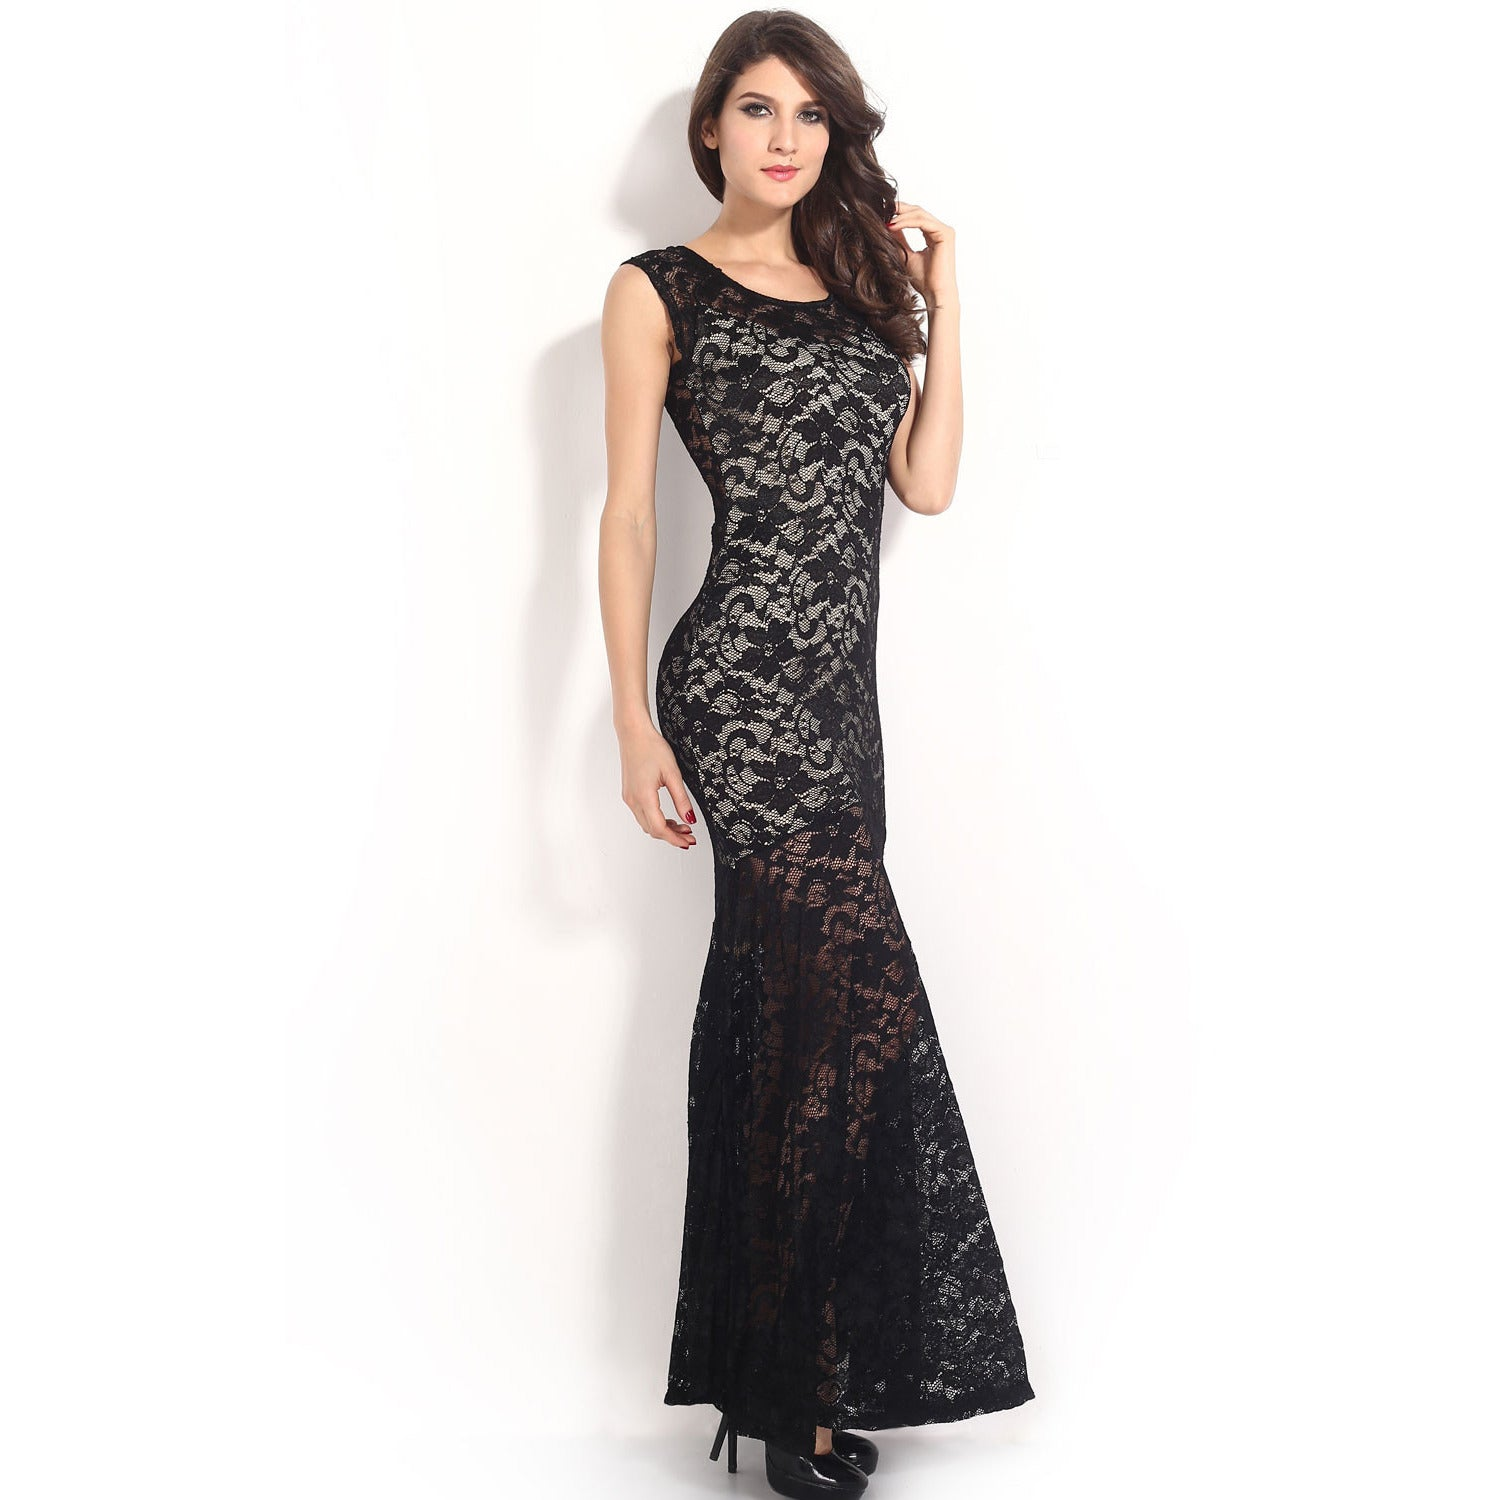 Sexy Lined Long Lace Evening Dress Sale LAVELIQ - LAVELIQ - 7